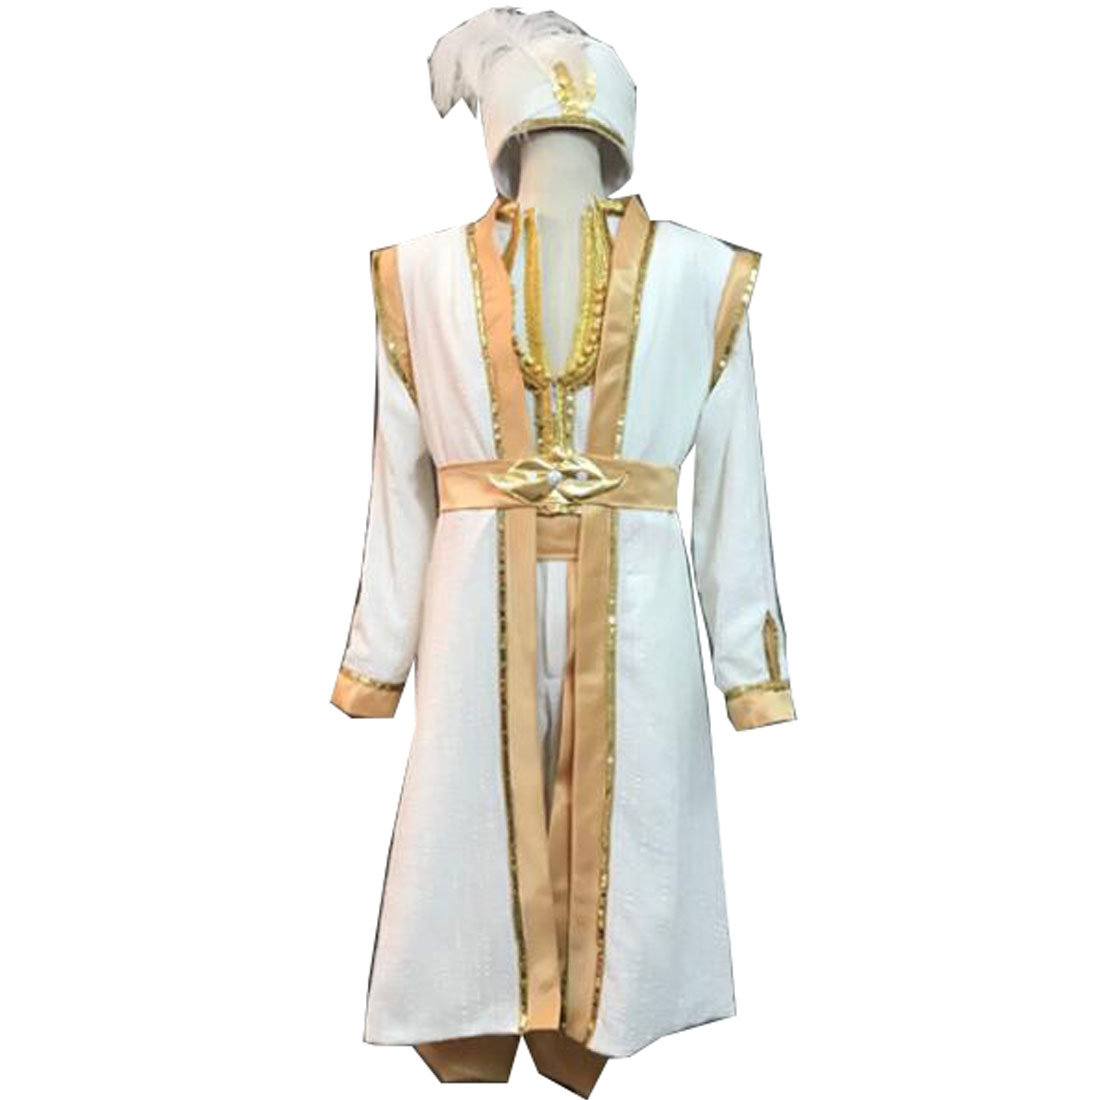 2019 Movie Aladdin Cosplay Costume Halloween Prince Costumes for Adult Jasmine and the Magic Lamp Aladdin Outfit With Hat